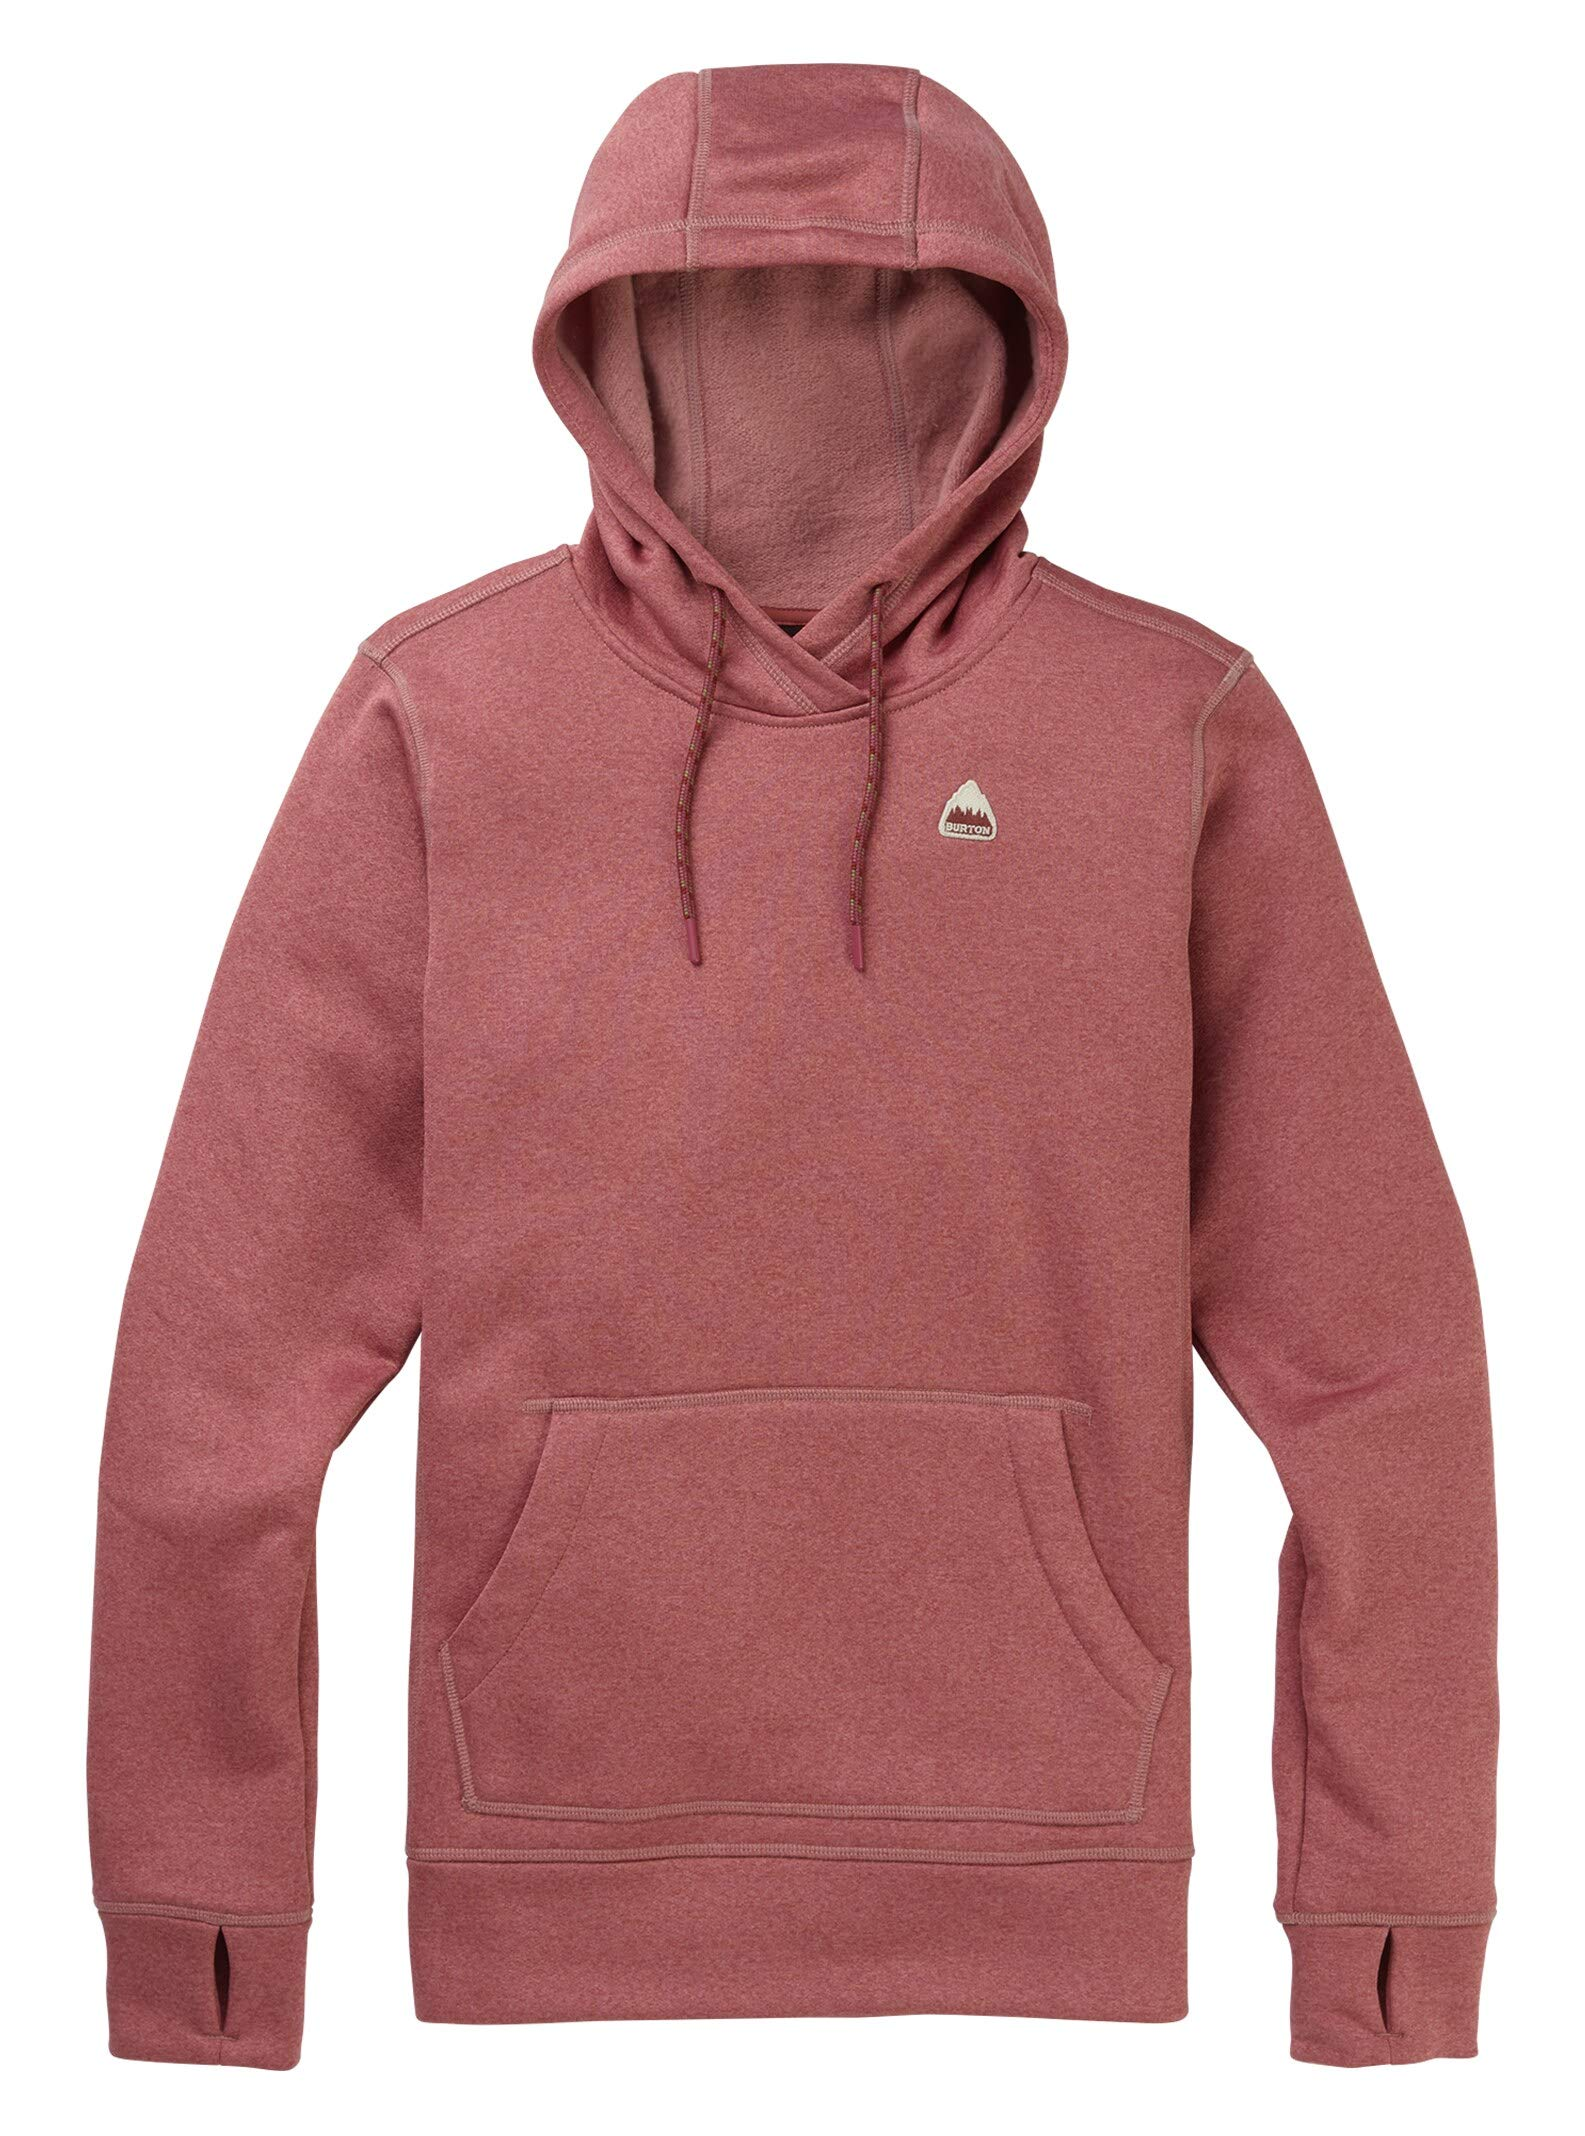 Burton Women's Oak Pullover Hoodie, Rose Brown Heather, XX-Small by Burton